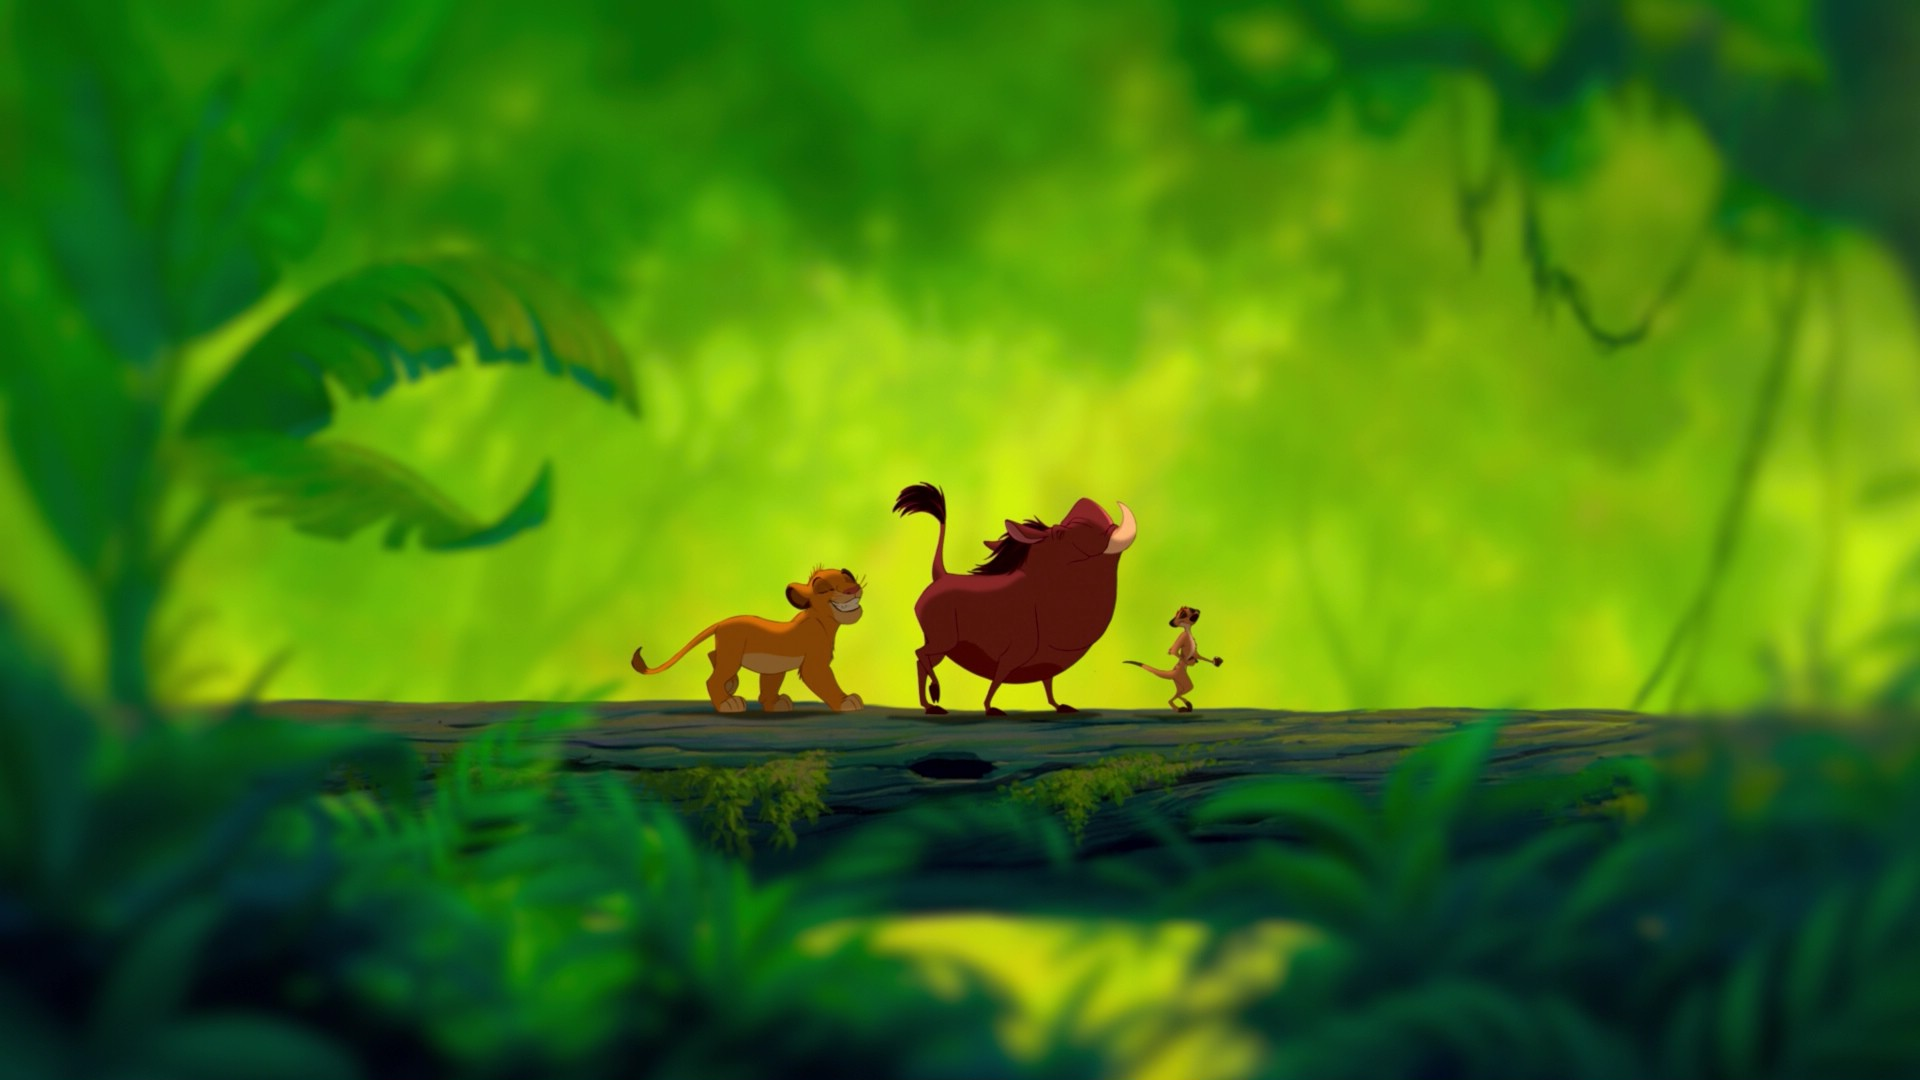 the lion king movie desktop hd wallpaper 64209